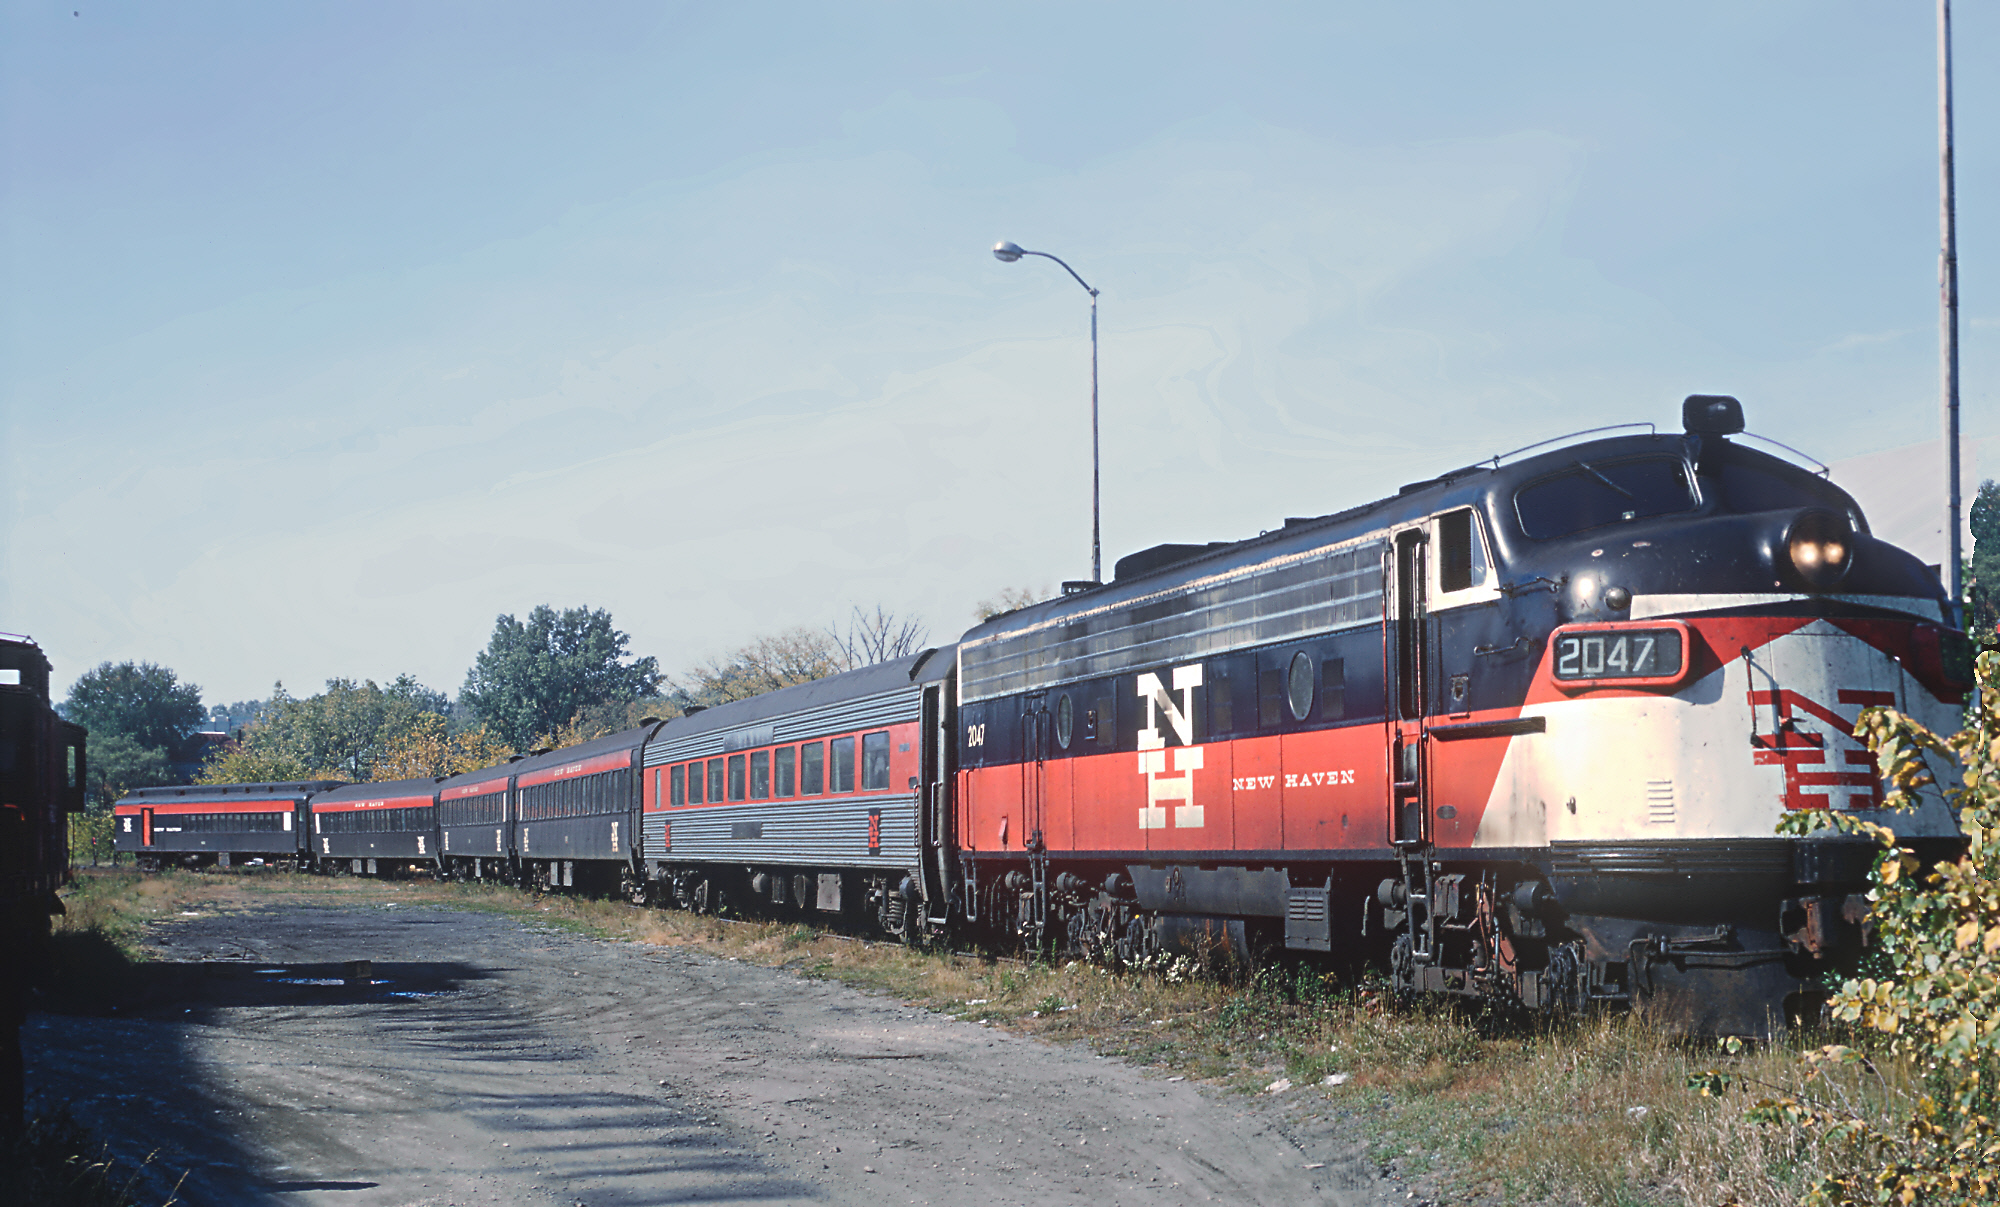 file new haven fl9 2047 with train 138 sunday only with deadhead parlor car at pittsfield ma. Black Bedroom Furniture Sets. Home Design Ideas